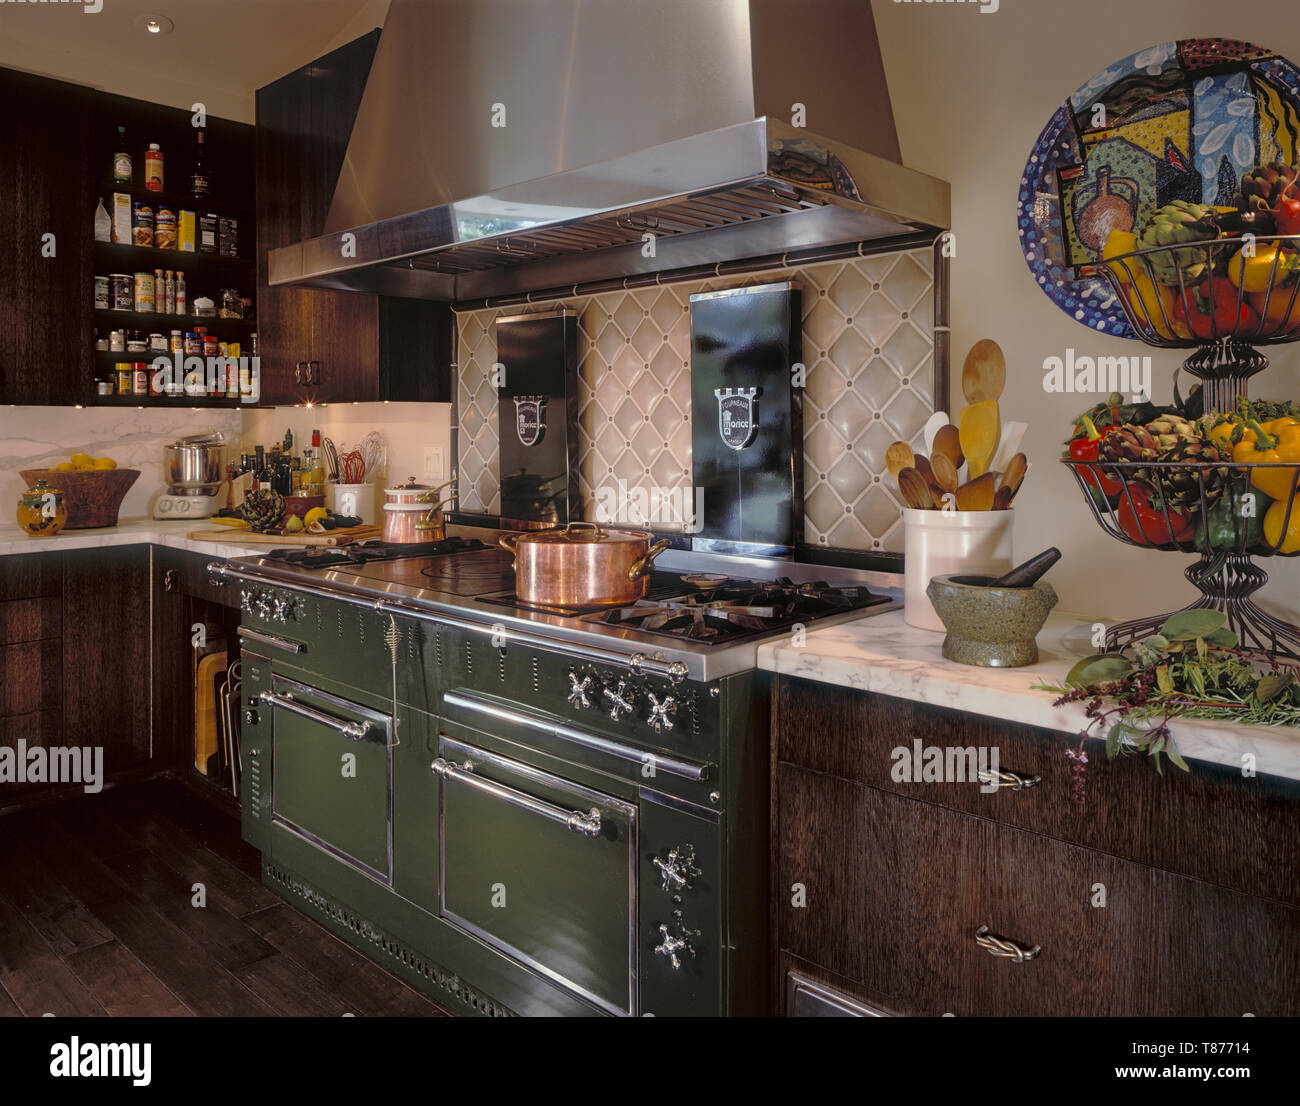 Rustic Kitchen - Stock Image